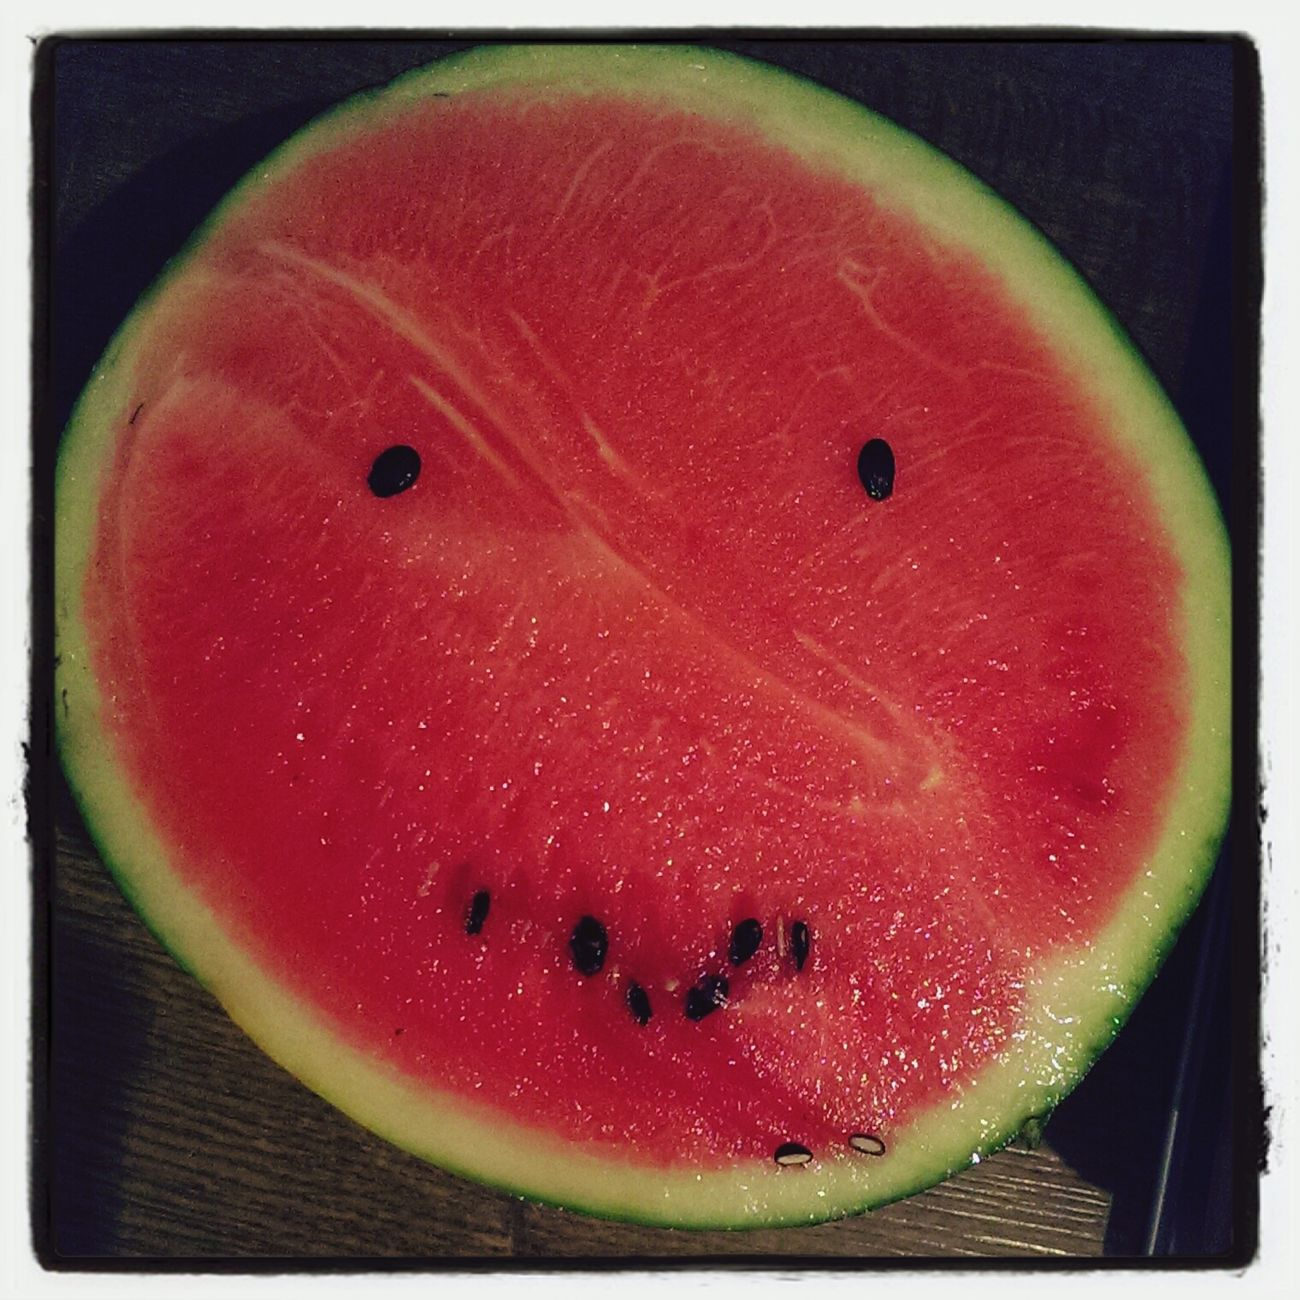 Ich habe eine Wassermelone getragen....??? Hi! That's Me Enjoying Life Quality Time Watermelonhead Eating Watermelon Watermelonseed Watermeloooooon Watermelon🍉🍉🍉 I Love Watermelon!